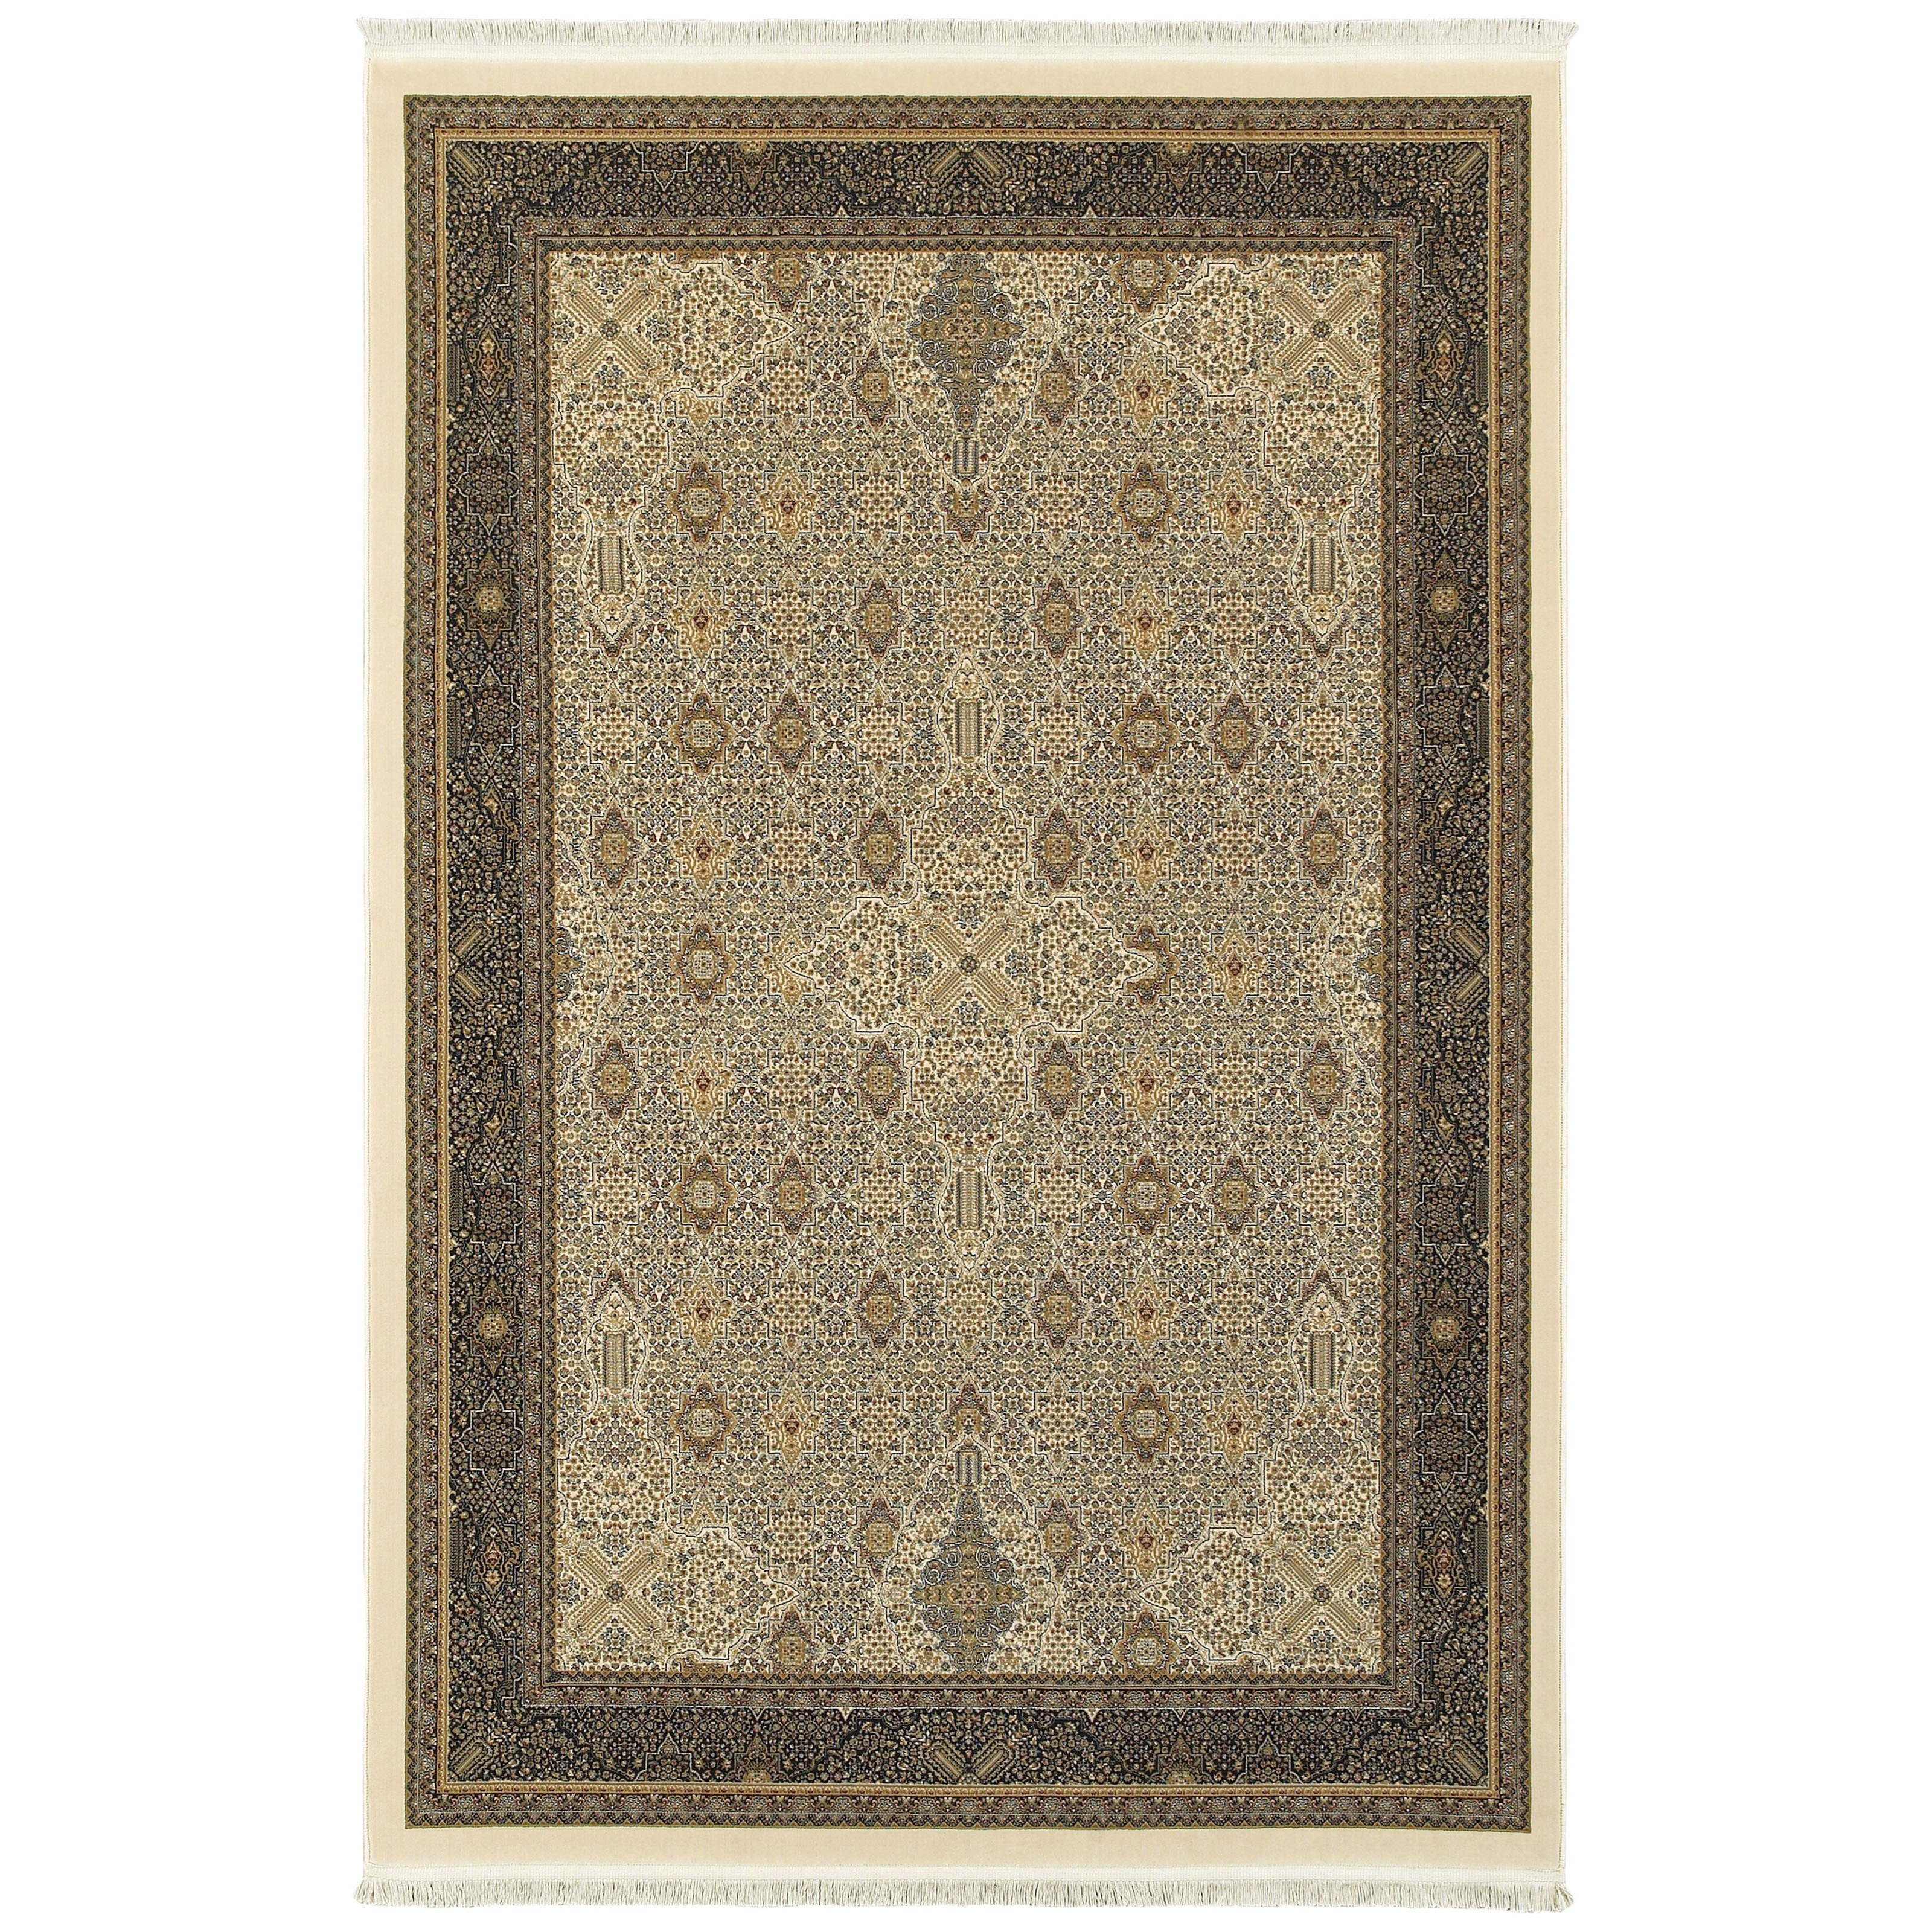 "Masterpiece 9'10"" X 12'10"" Rectangle Rug by Oriental Weavers at Godby Home Furnishings"